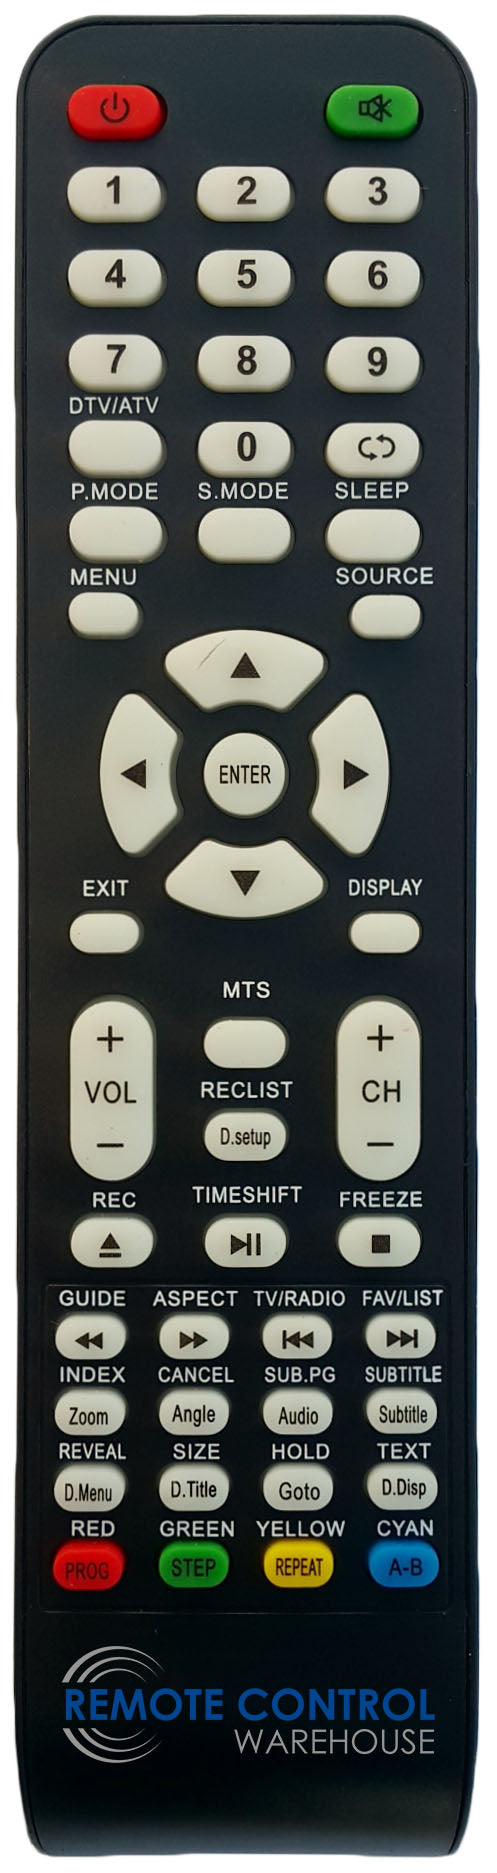 VEON REMOTE CONTROL SUITS - VN3299LEDDVD LED TV